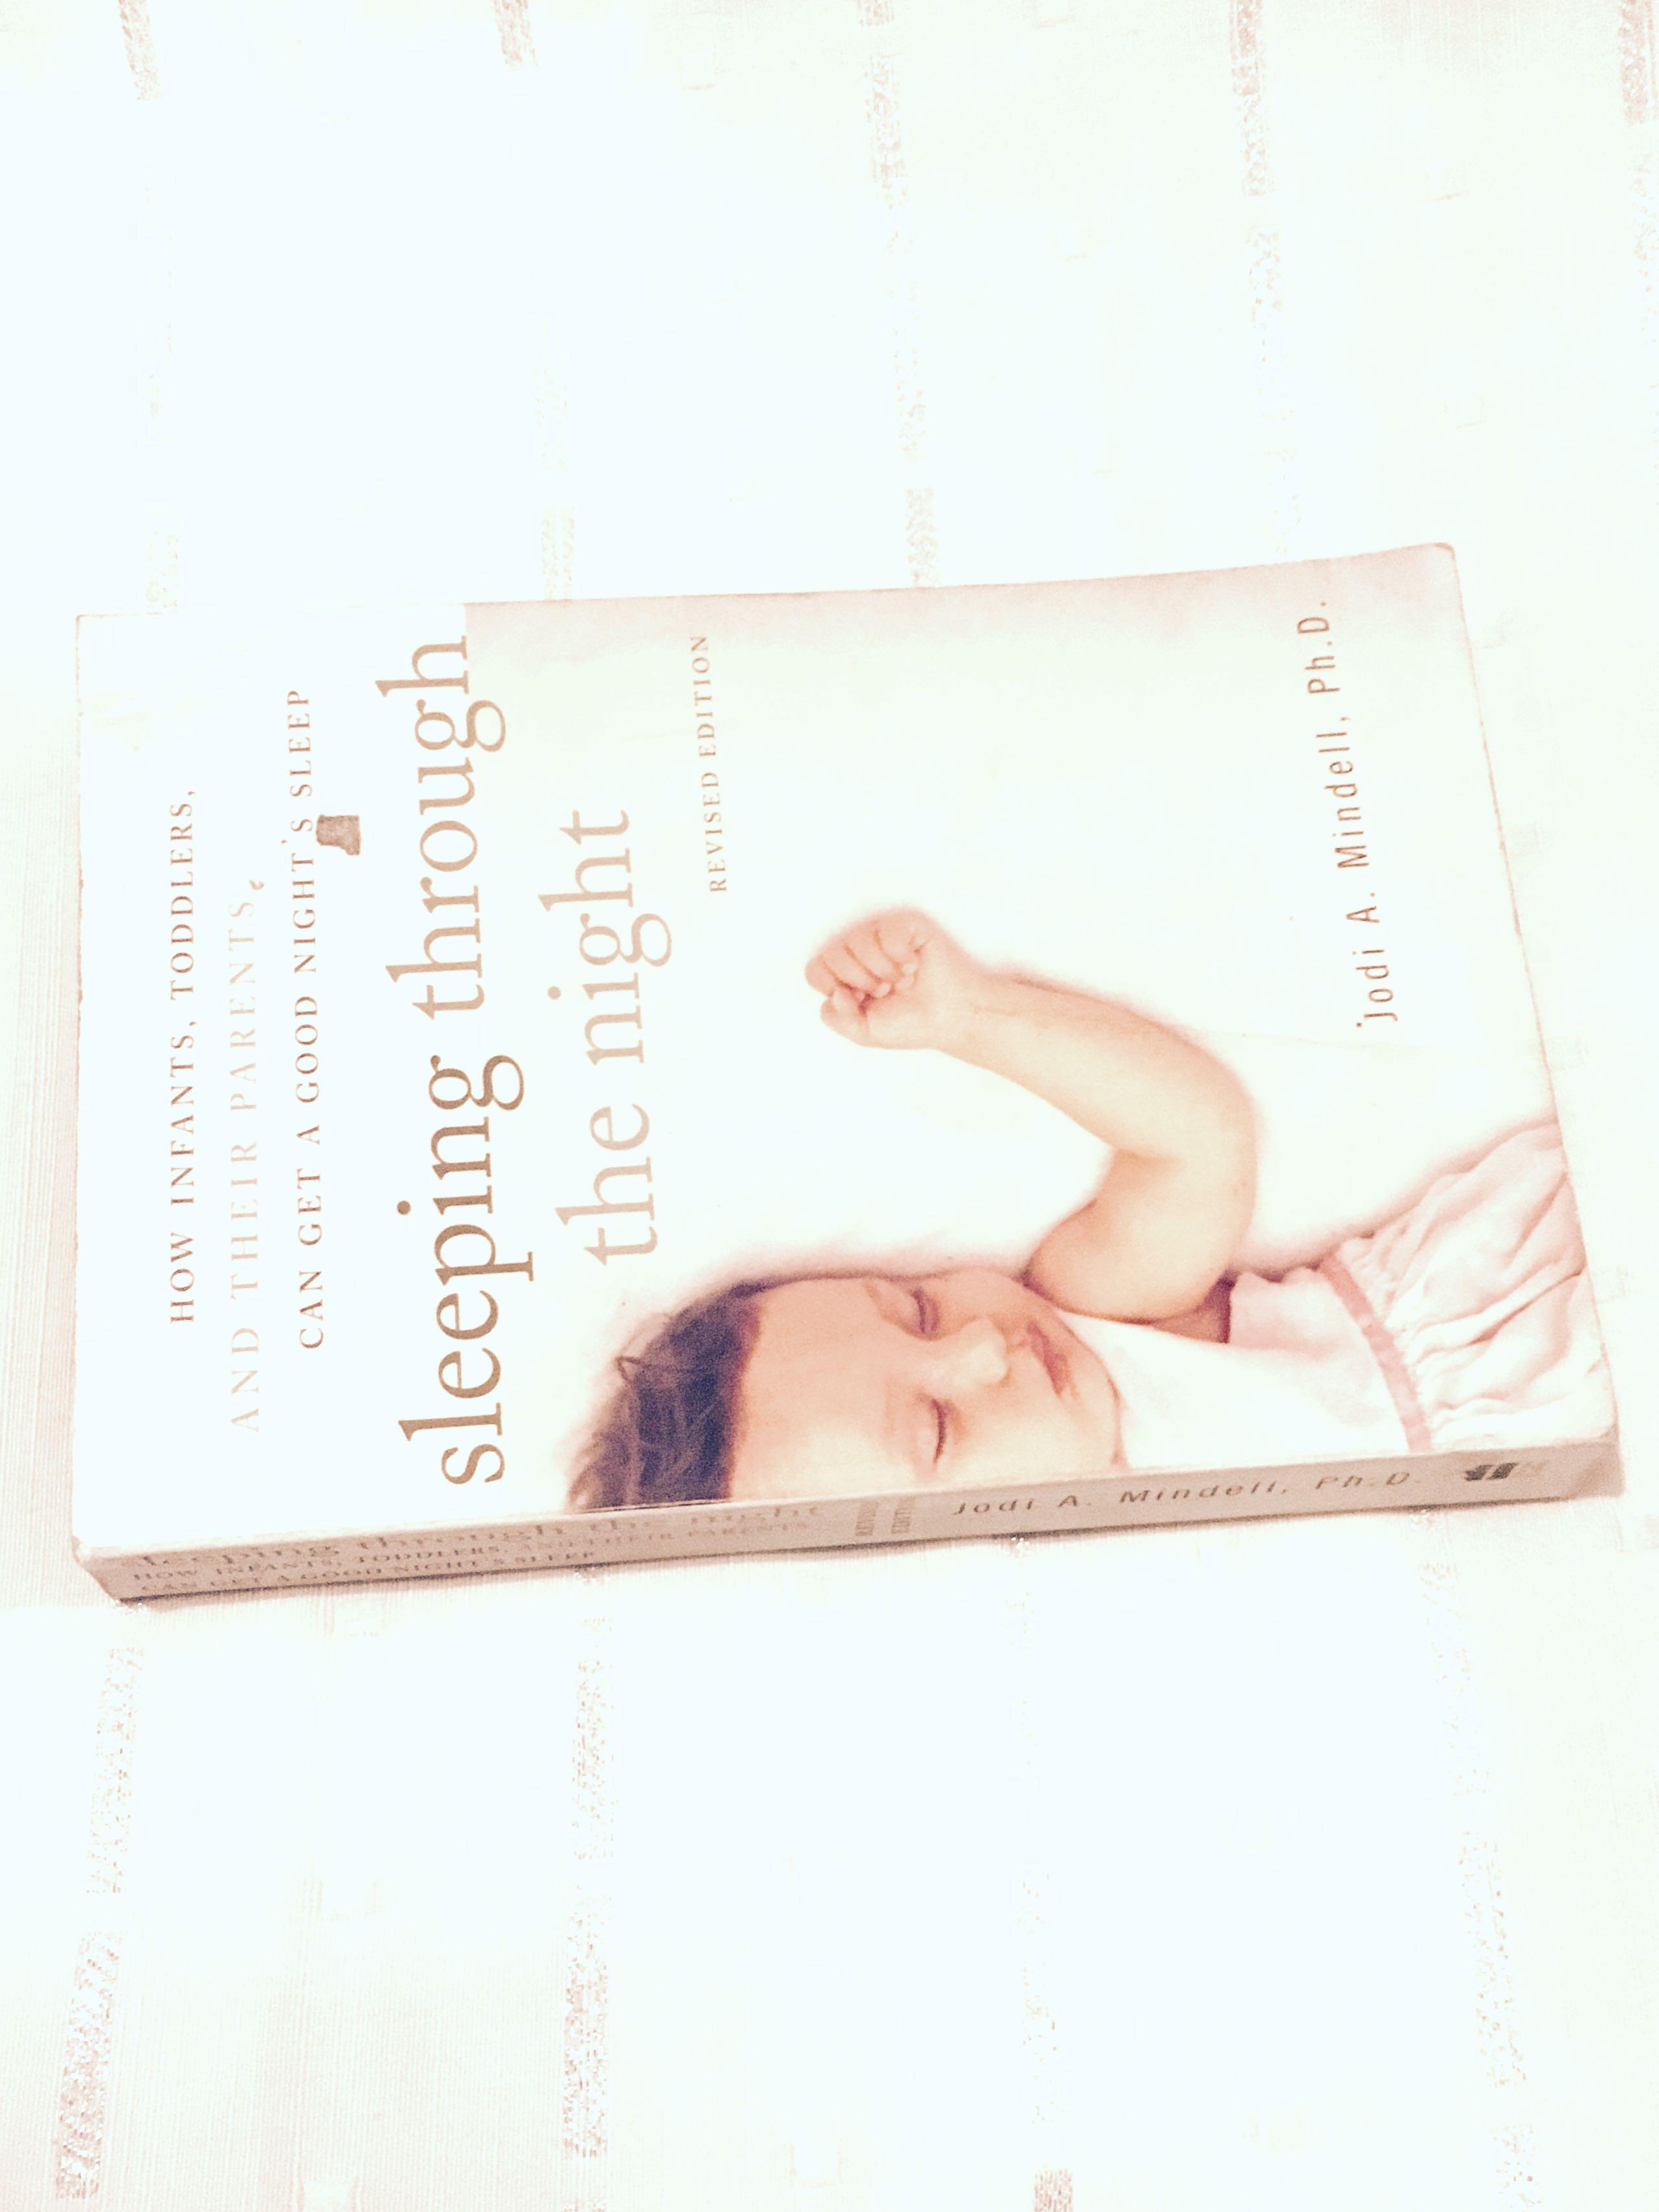 Sleeping Through the Night by Jodi A. Mindell Parenting Book